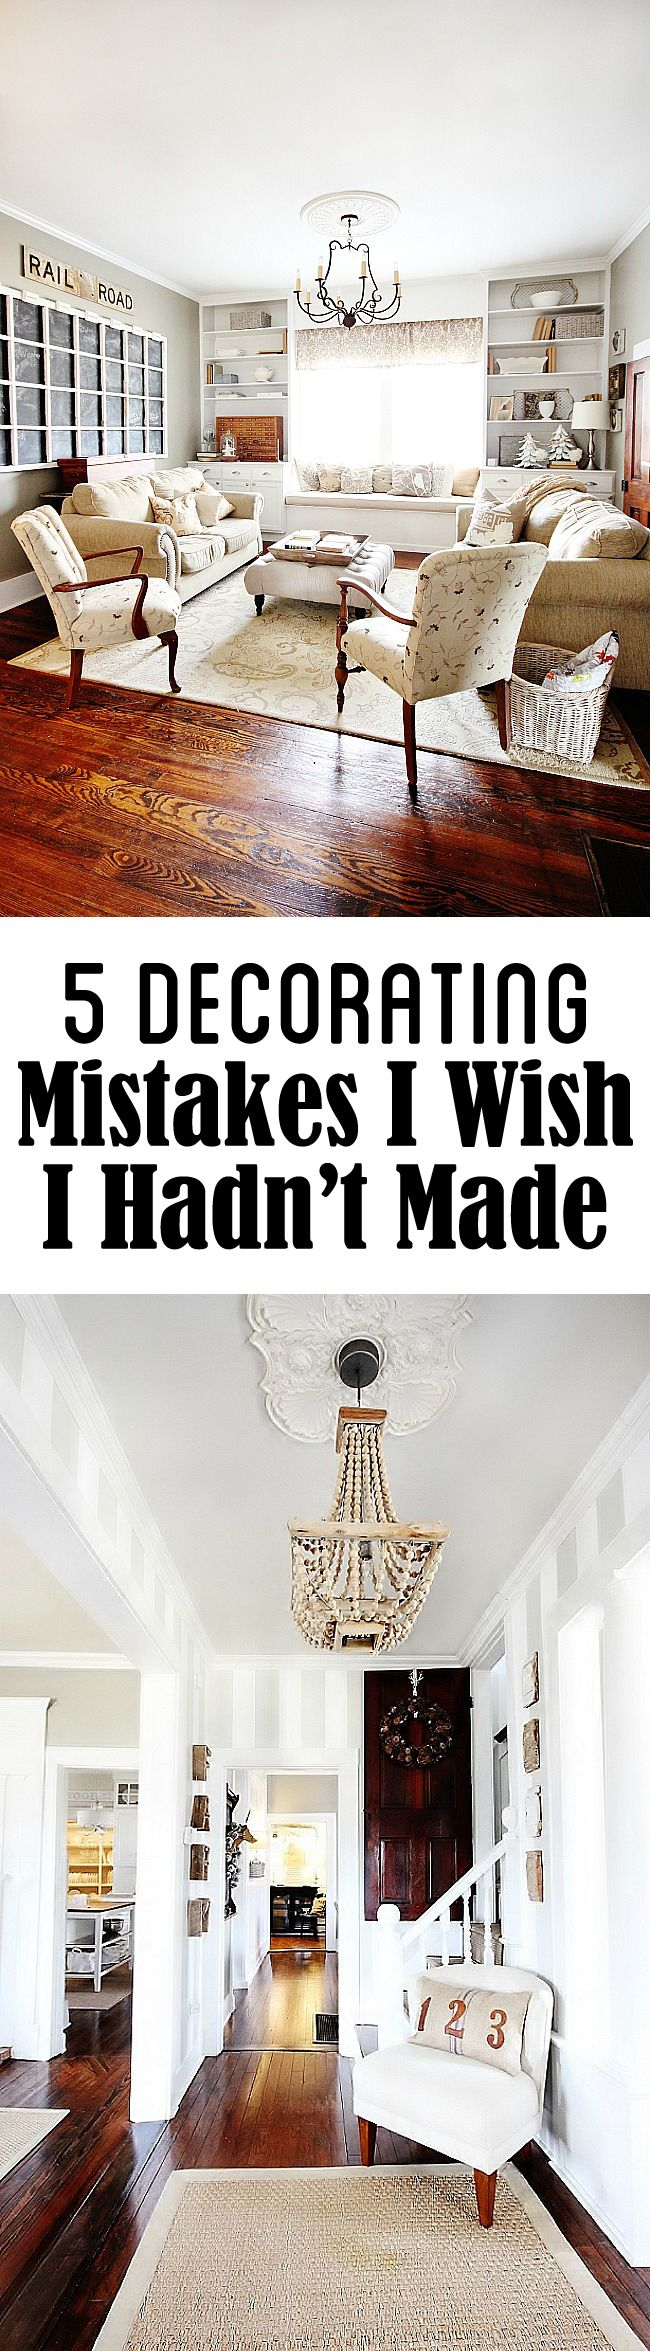 Before you start redecorating your room, take some advice from one of our favorite bloggers, Thistlewood Farms! She takes a look back on the five decorating mistakes she wishes she hadn't made, so that you don't have to do the same!